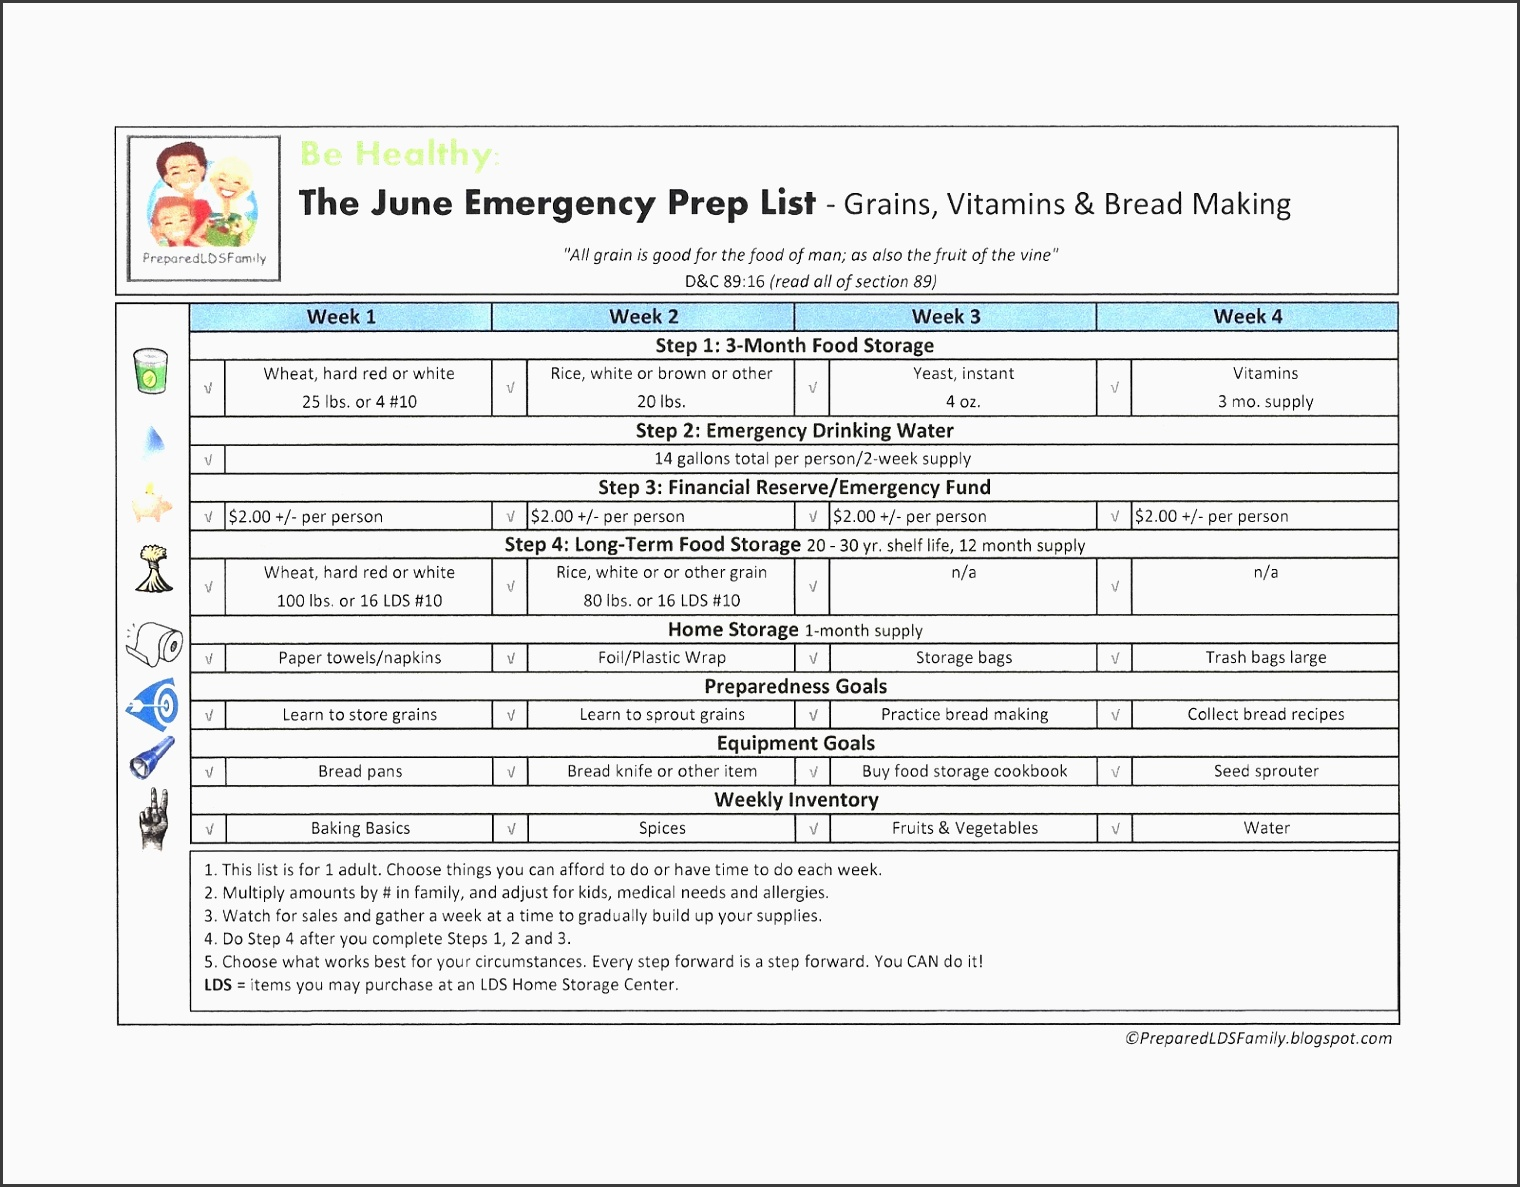 prepared lds family june emergency preparedness goals grains vitamins and bread making